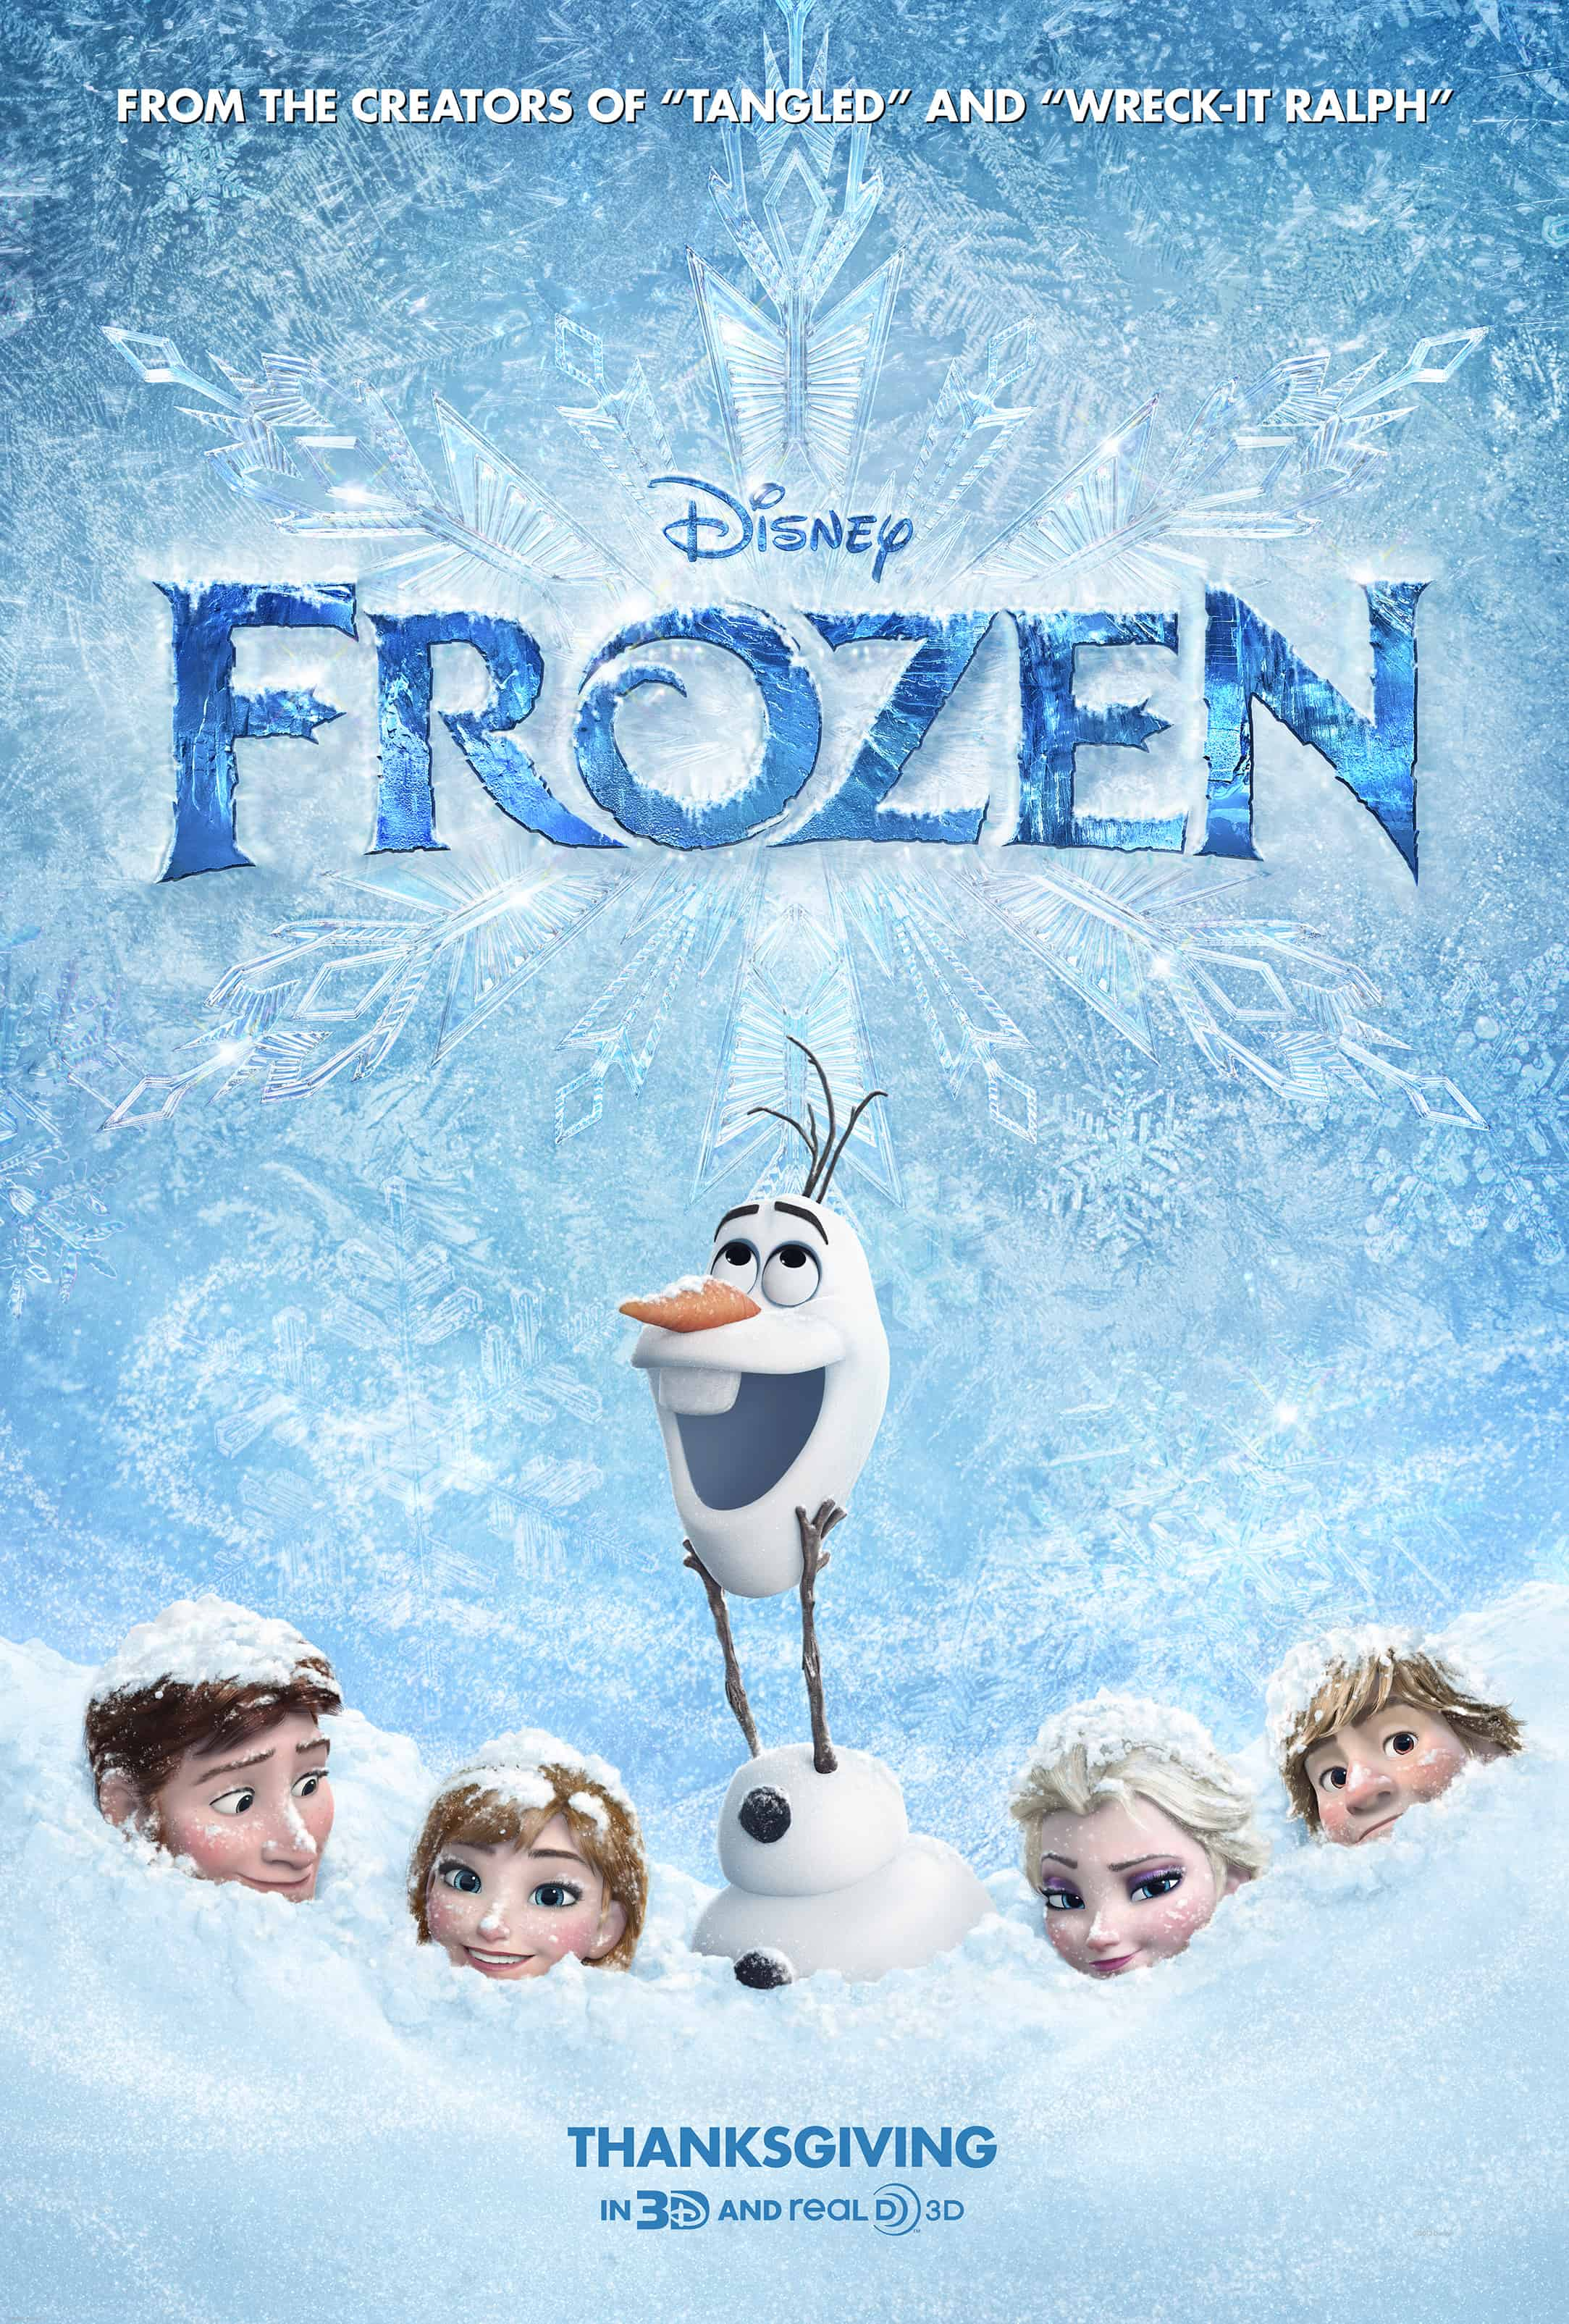 Disney's Frozen: Free Printables! #DisneyFrozen - Teachable Mommy